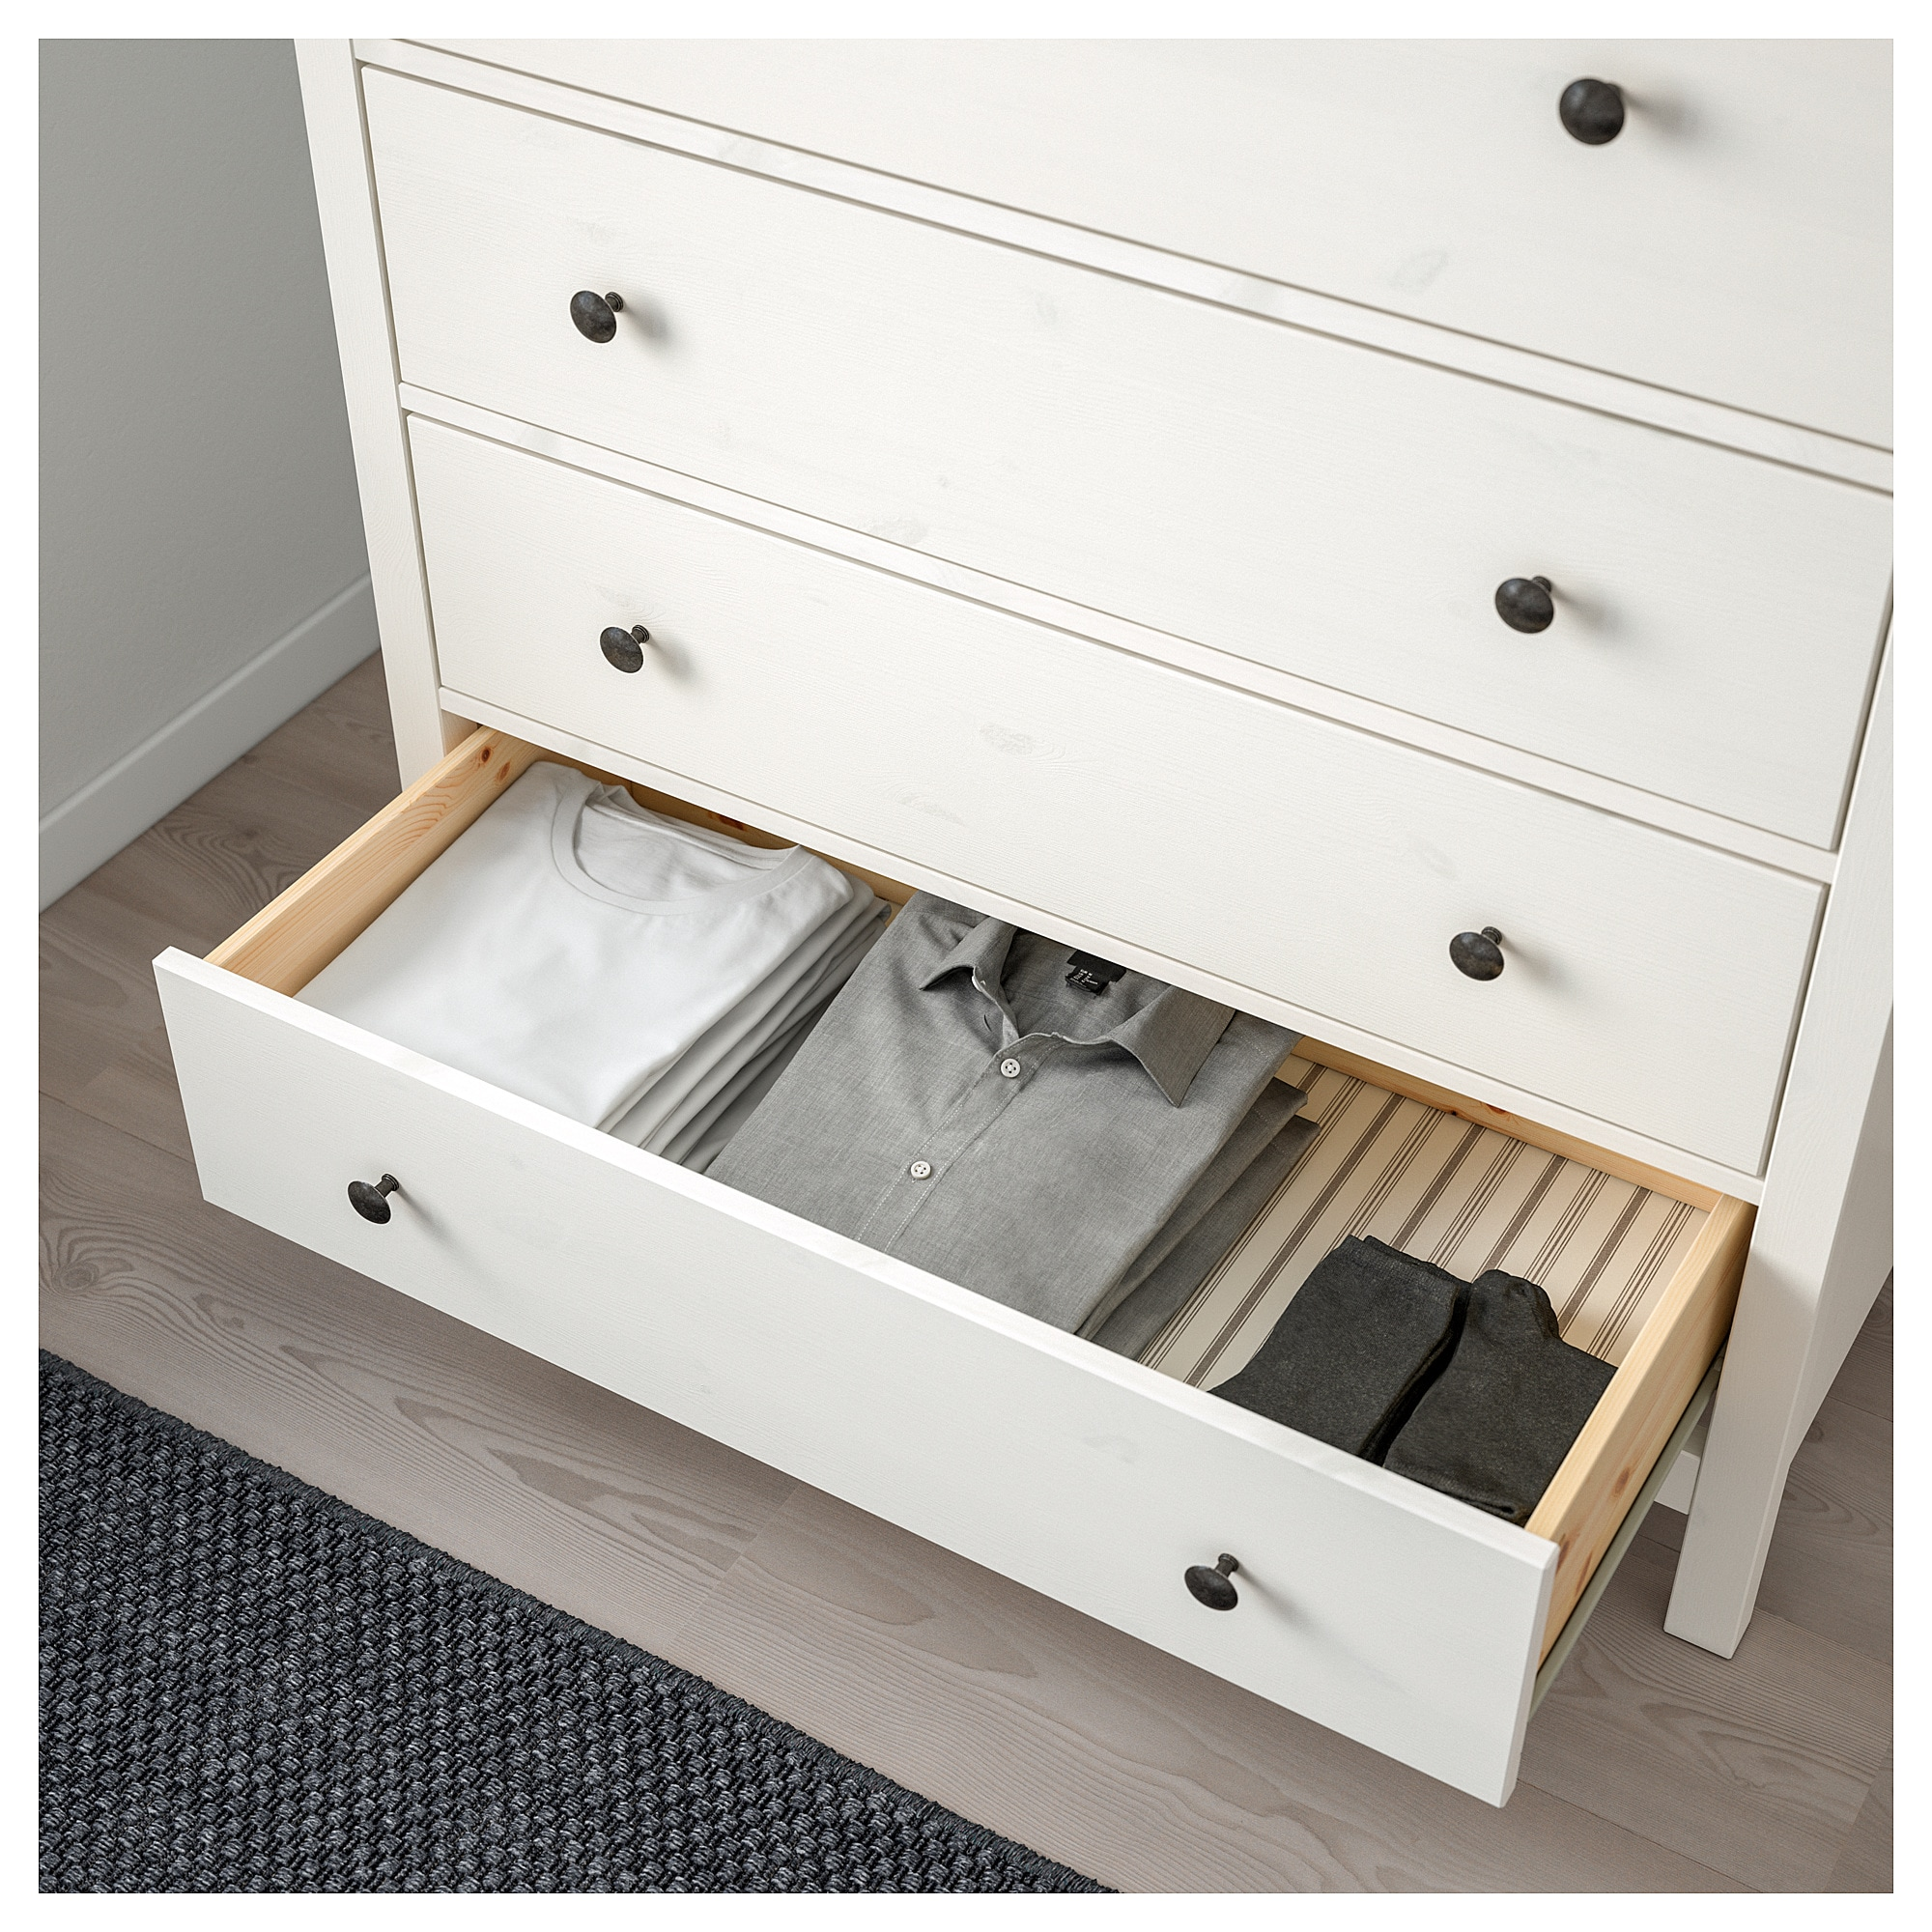 wayfair double dresser furniture reviews gracie jewelry oaks pdx with drawer cleveland